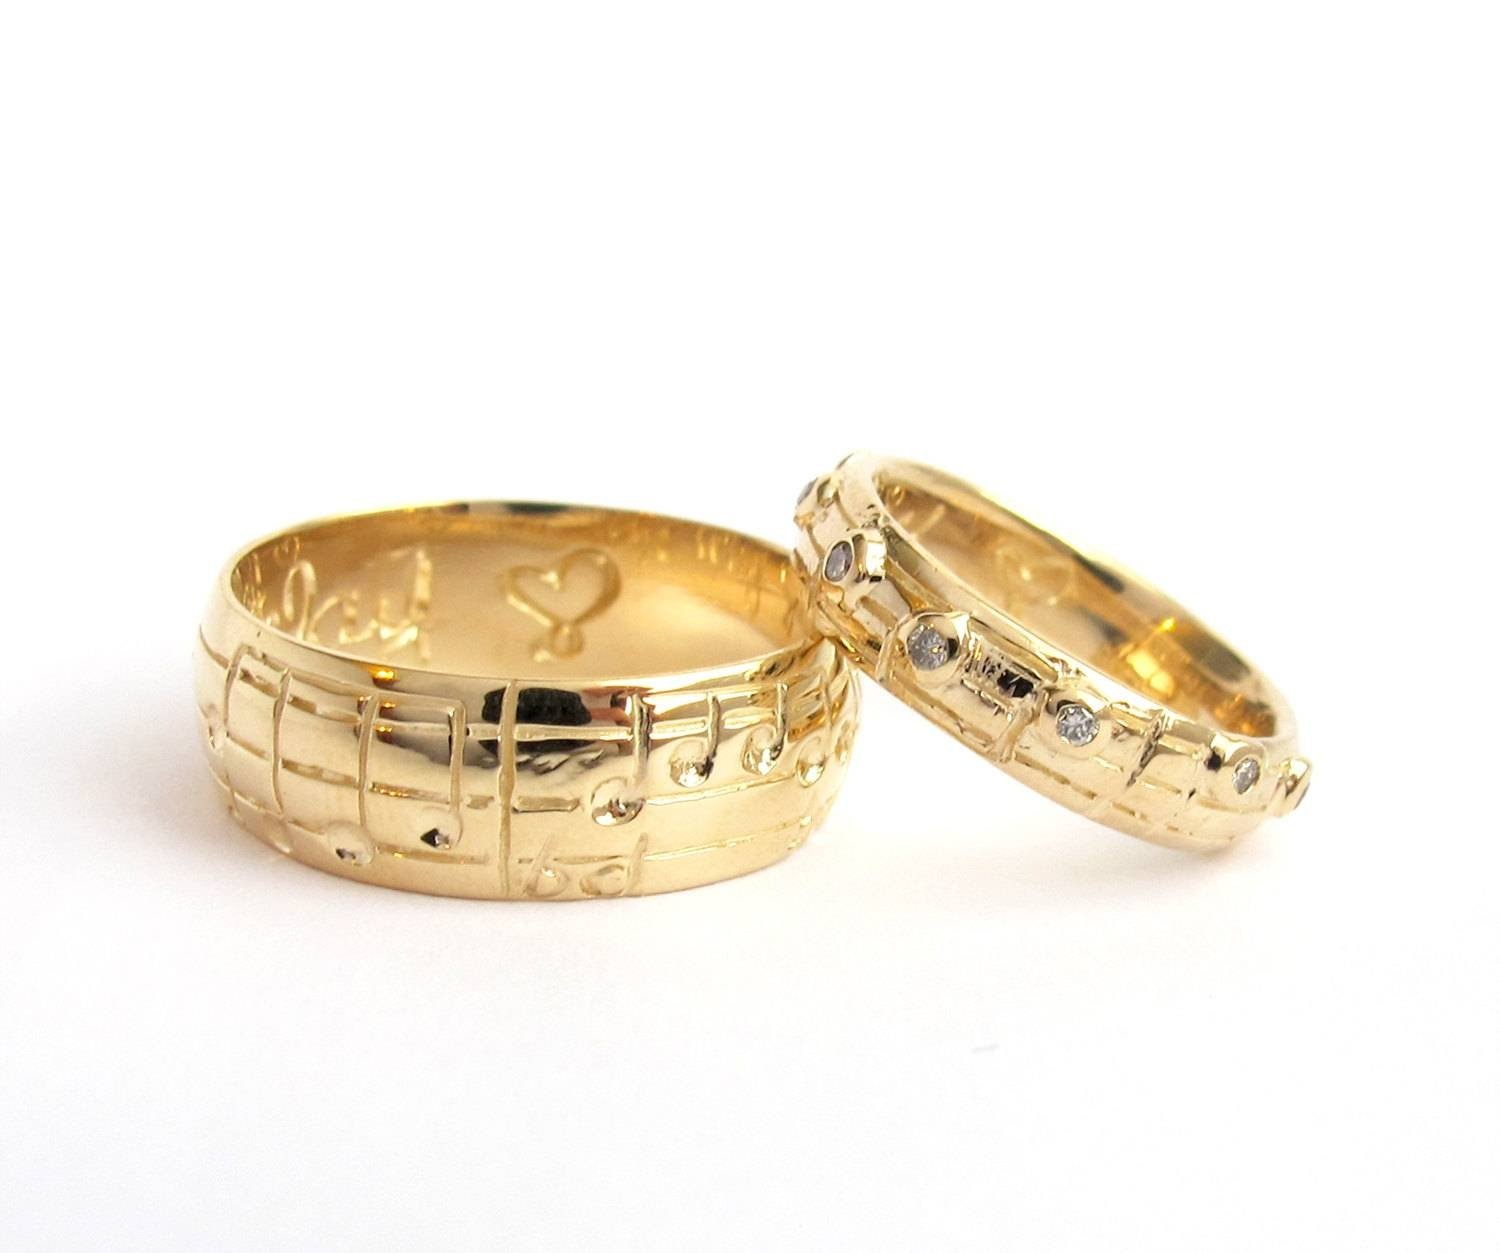 Charming New Wedding Rings Within Music Wedding Rings (View 2 of 15)